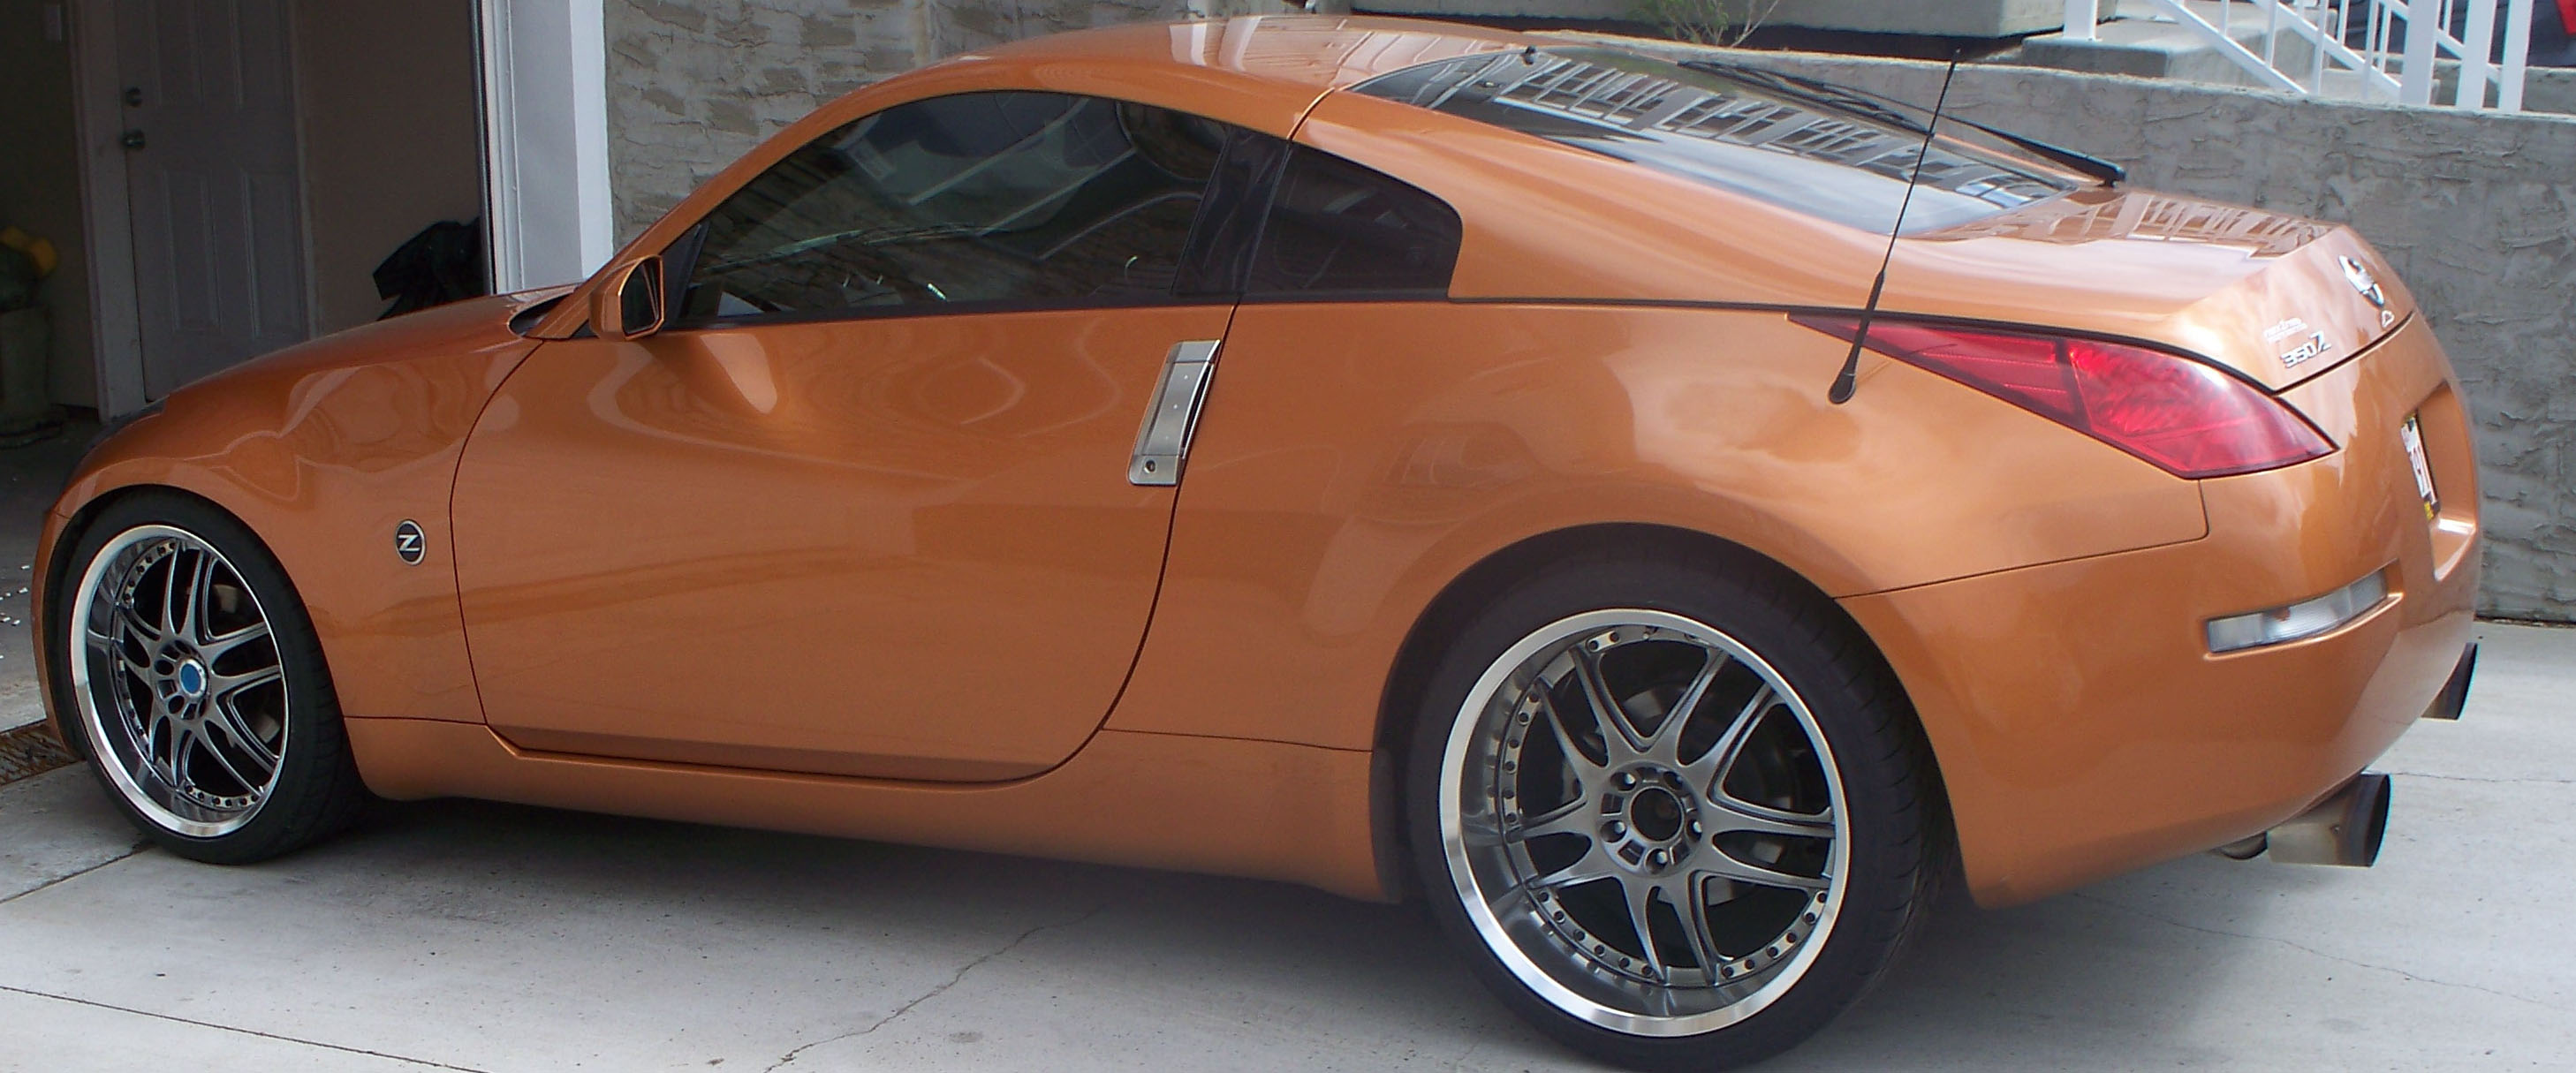 2003 Nissan 350Z Boosted performance turbo